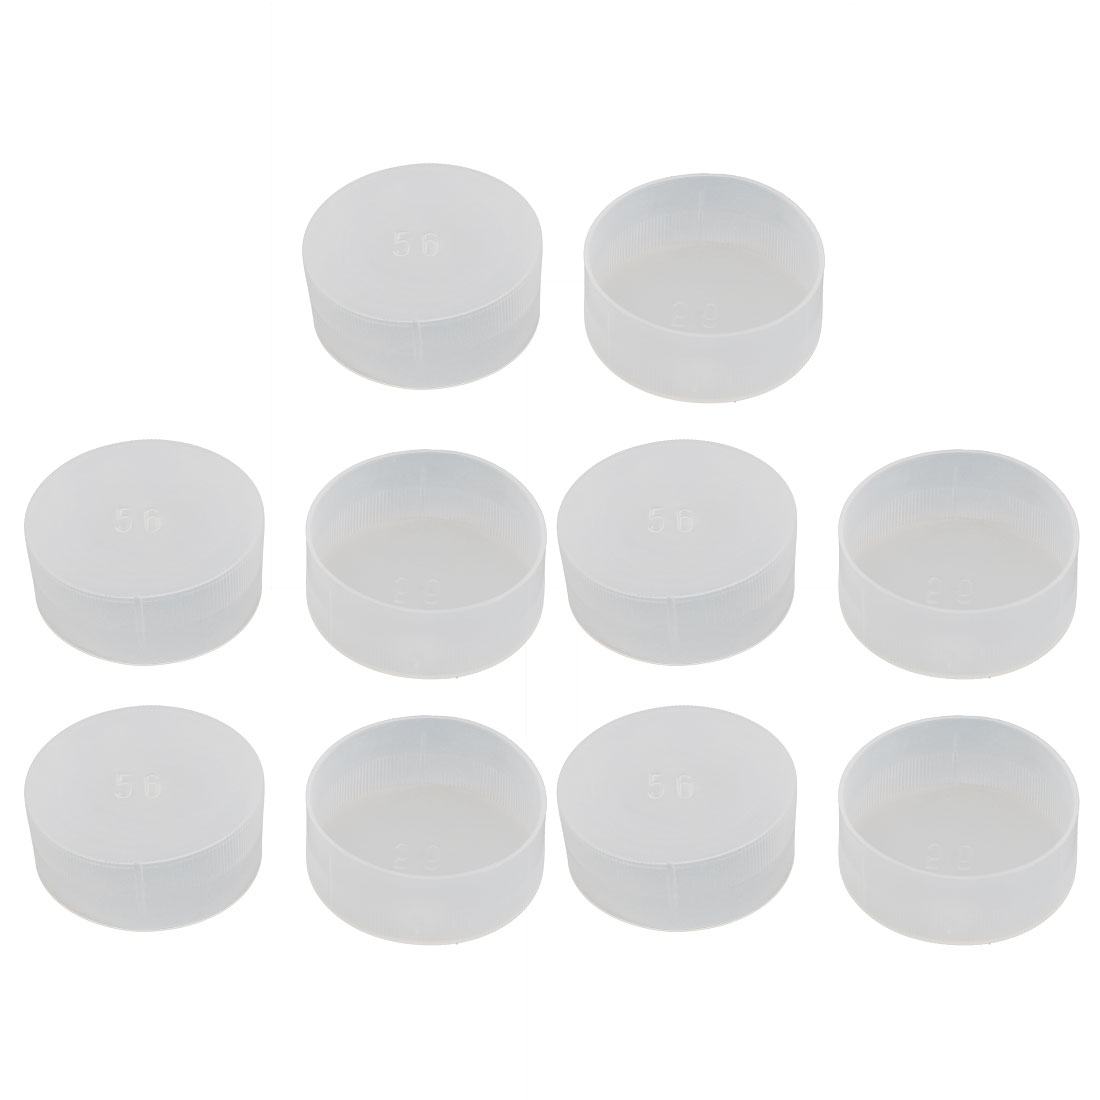 10pcs M56 White Plastic Thread Round Cabinet Chair Leg Insert Cover Protector